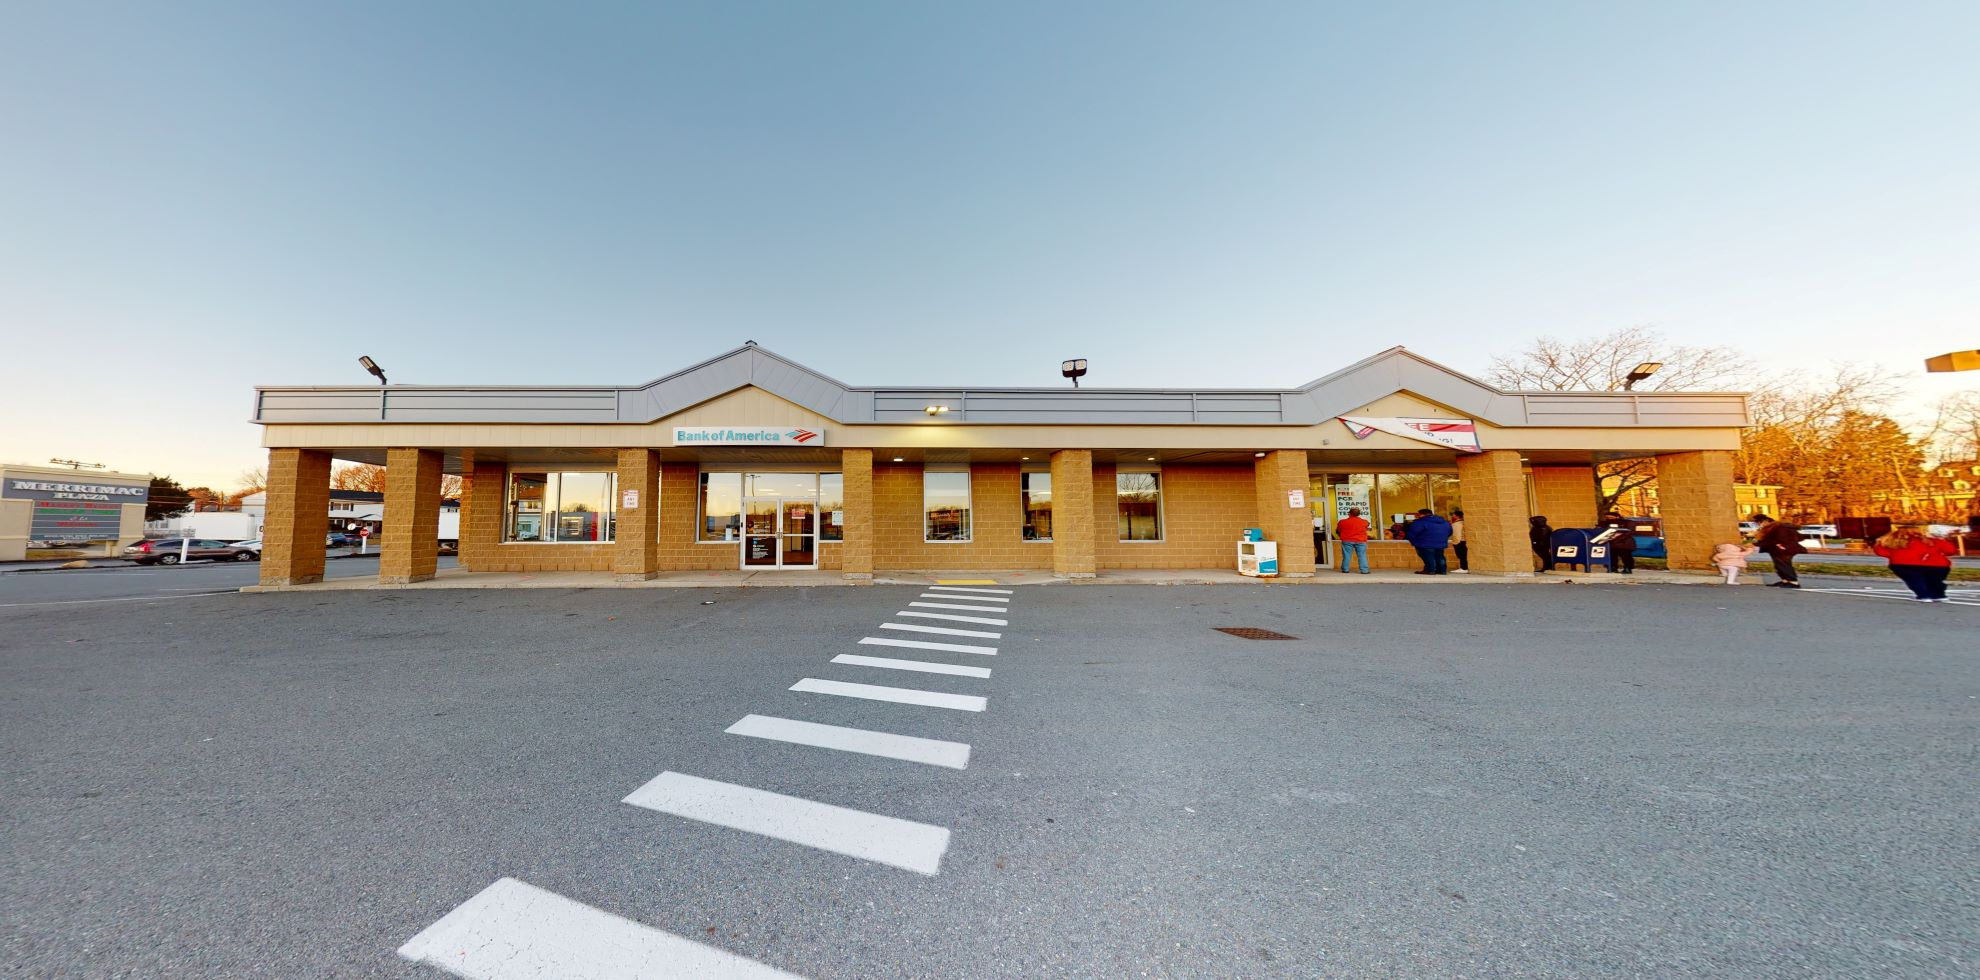 Bank of America financial center with walk-up ATM | 190 Haverhill St, Methuen, MA 01844